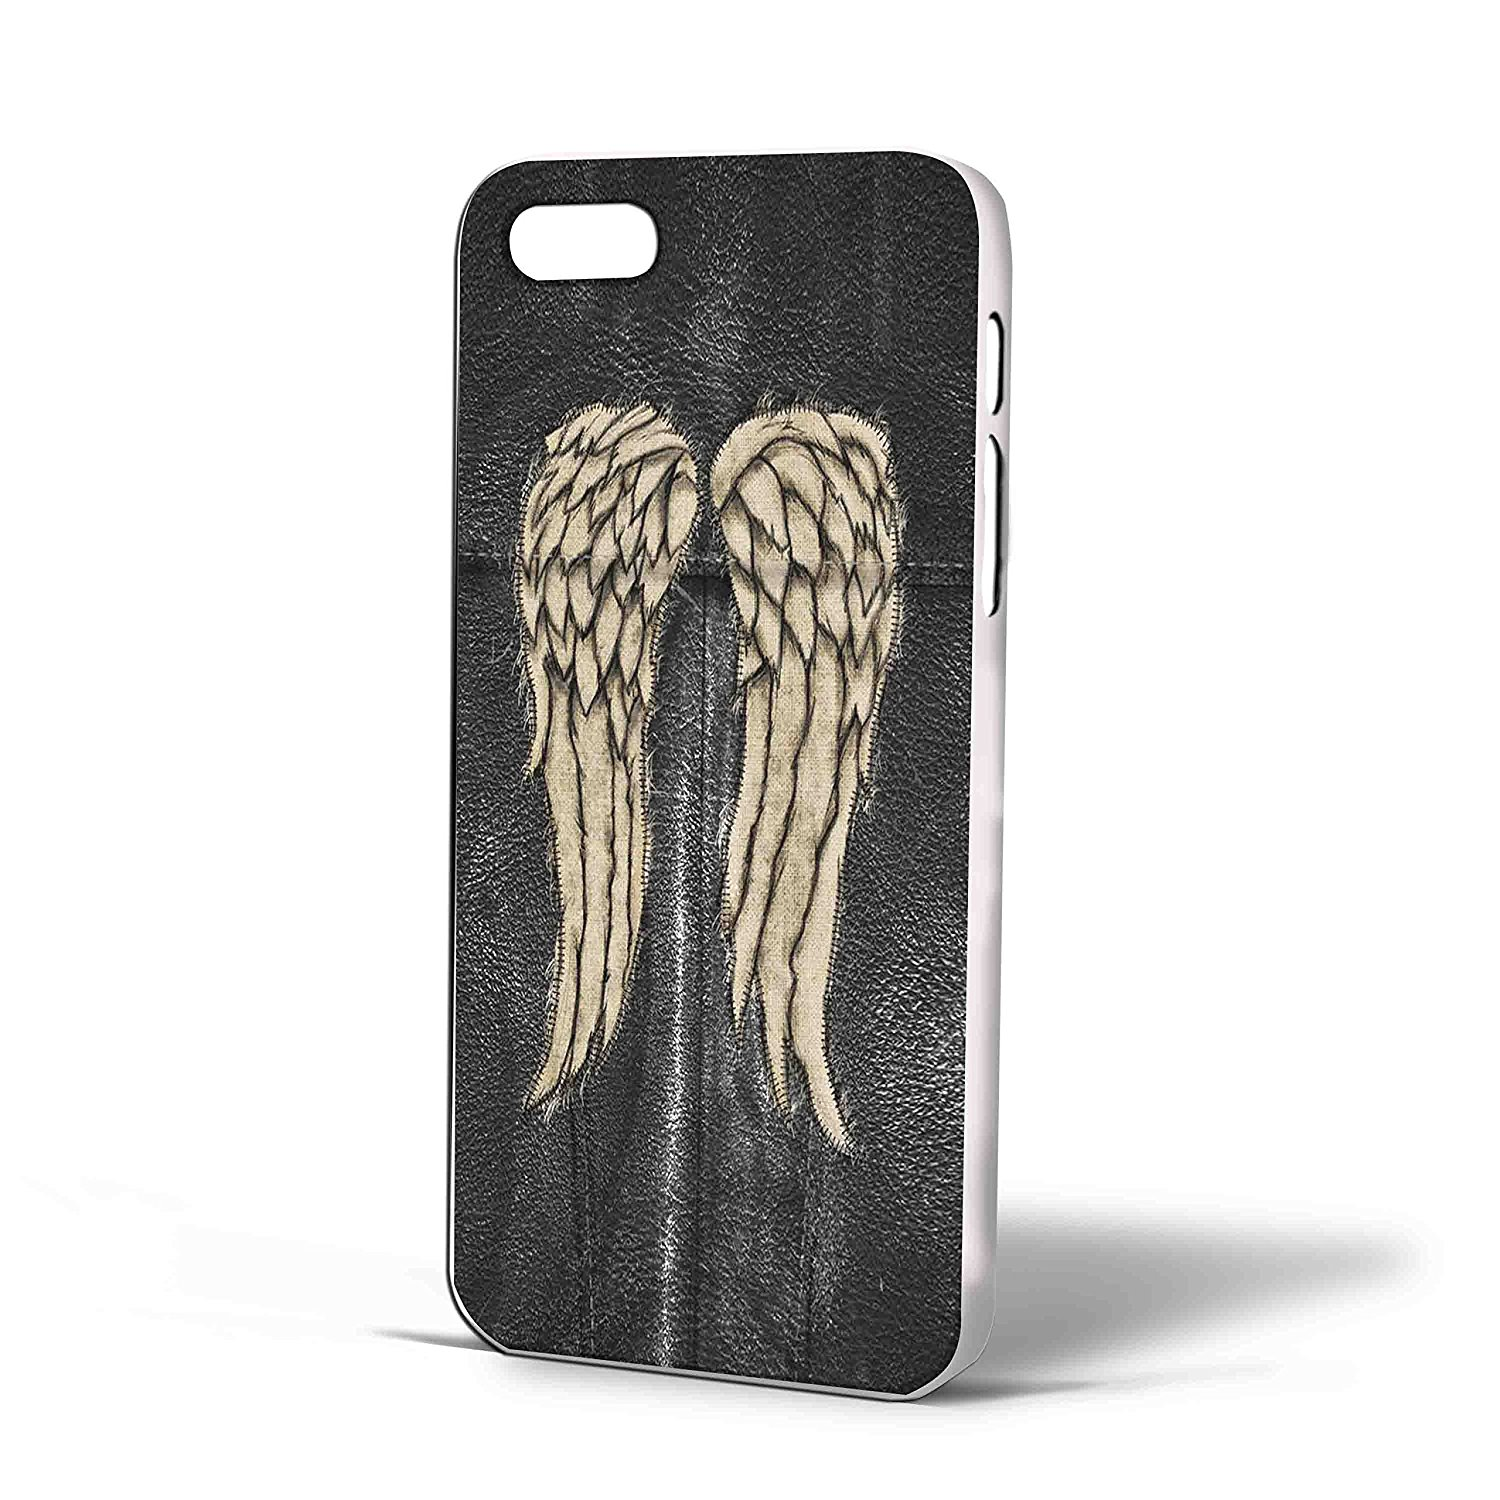 write on photos iphone ganma daryl dixon wings dixon wingsthe walking dead 7676